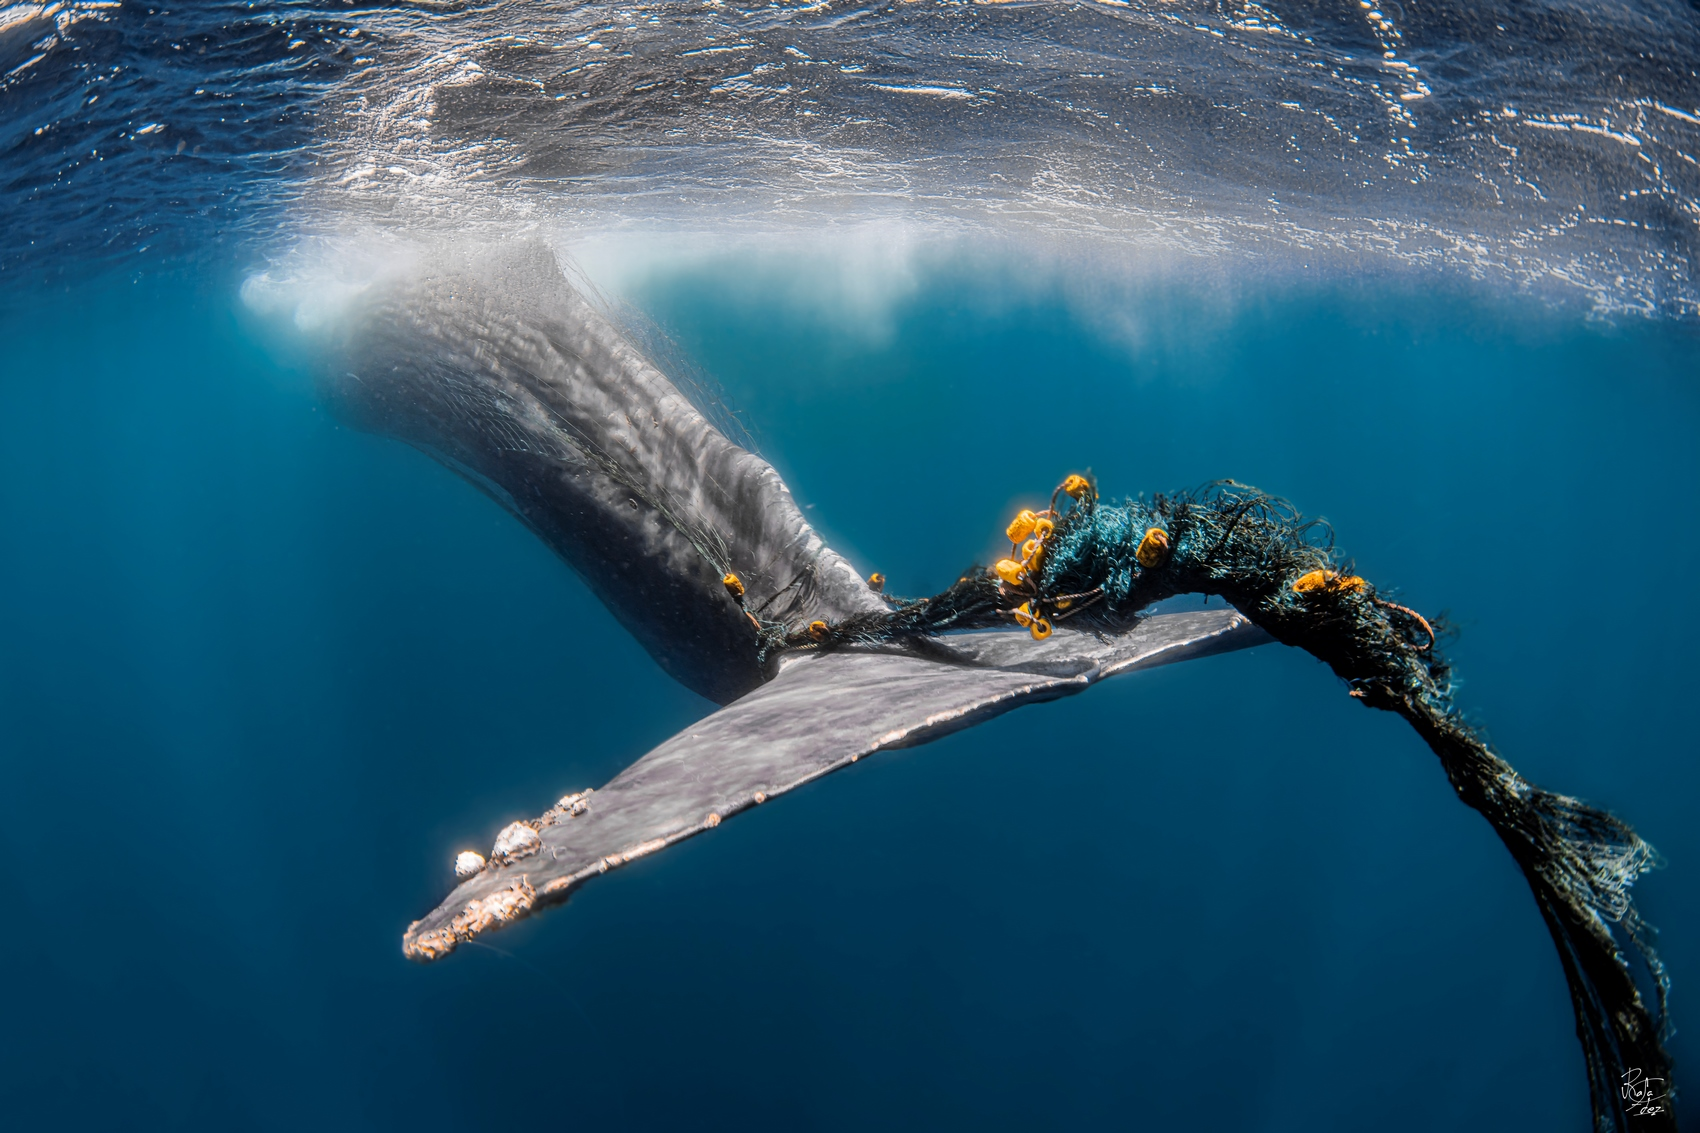 The last moments of a sperm whale